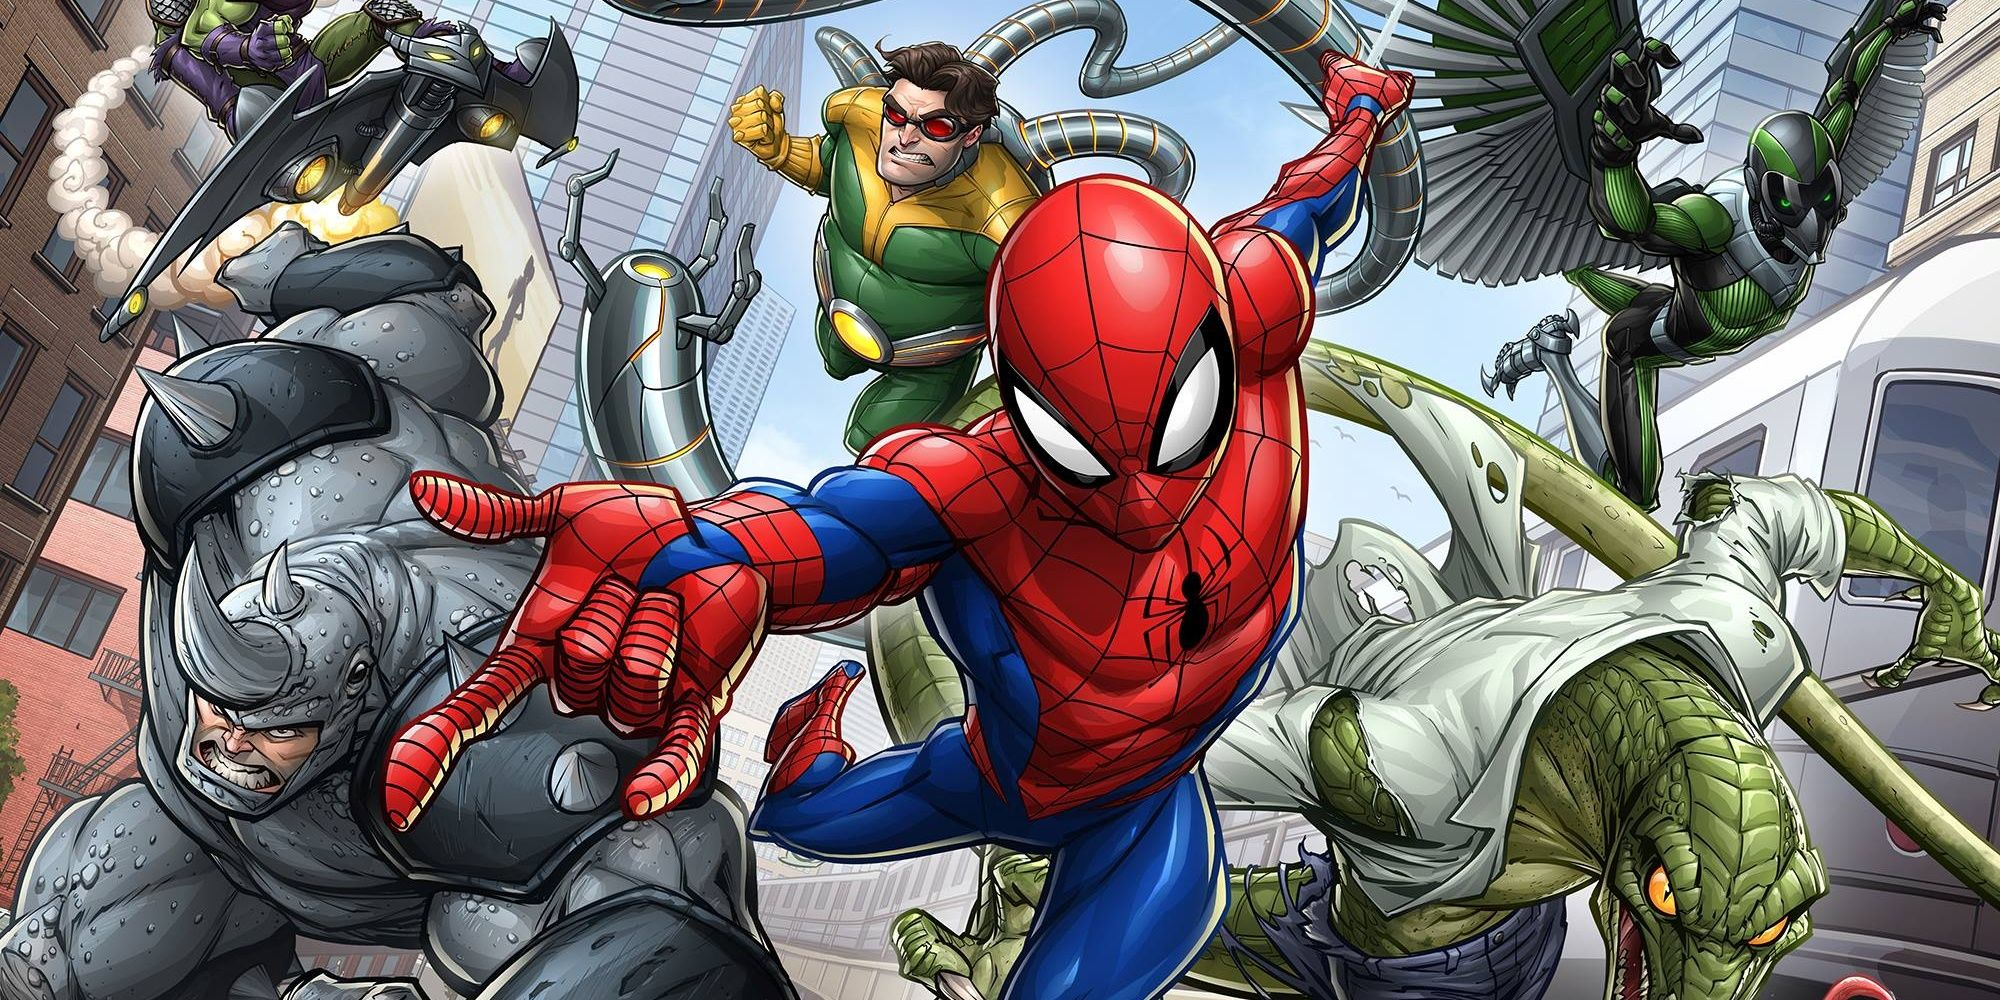 Spider-Man Animated Series Promo Art Teases Rogues Gallery